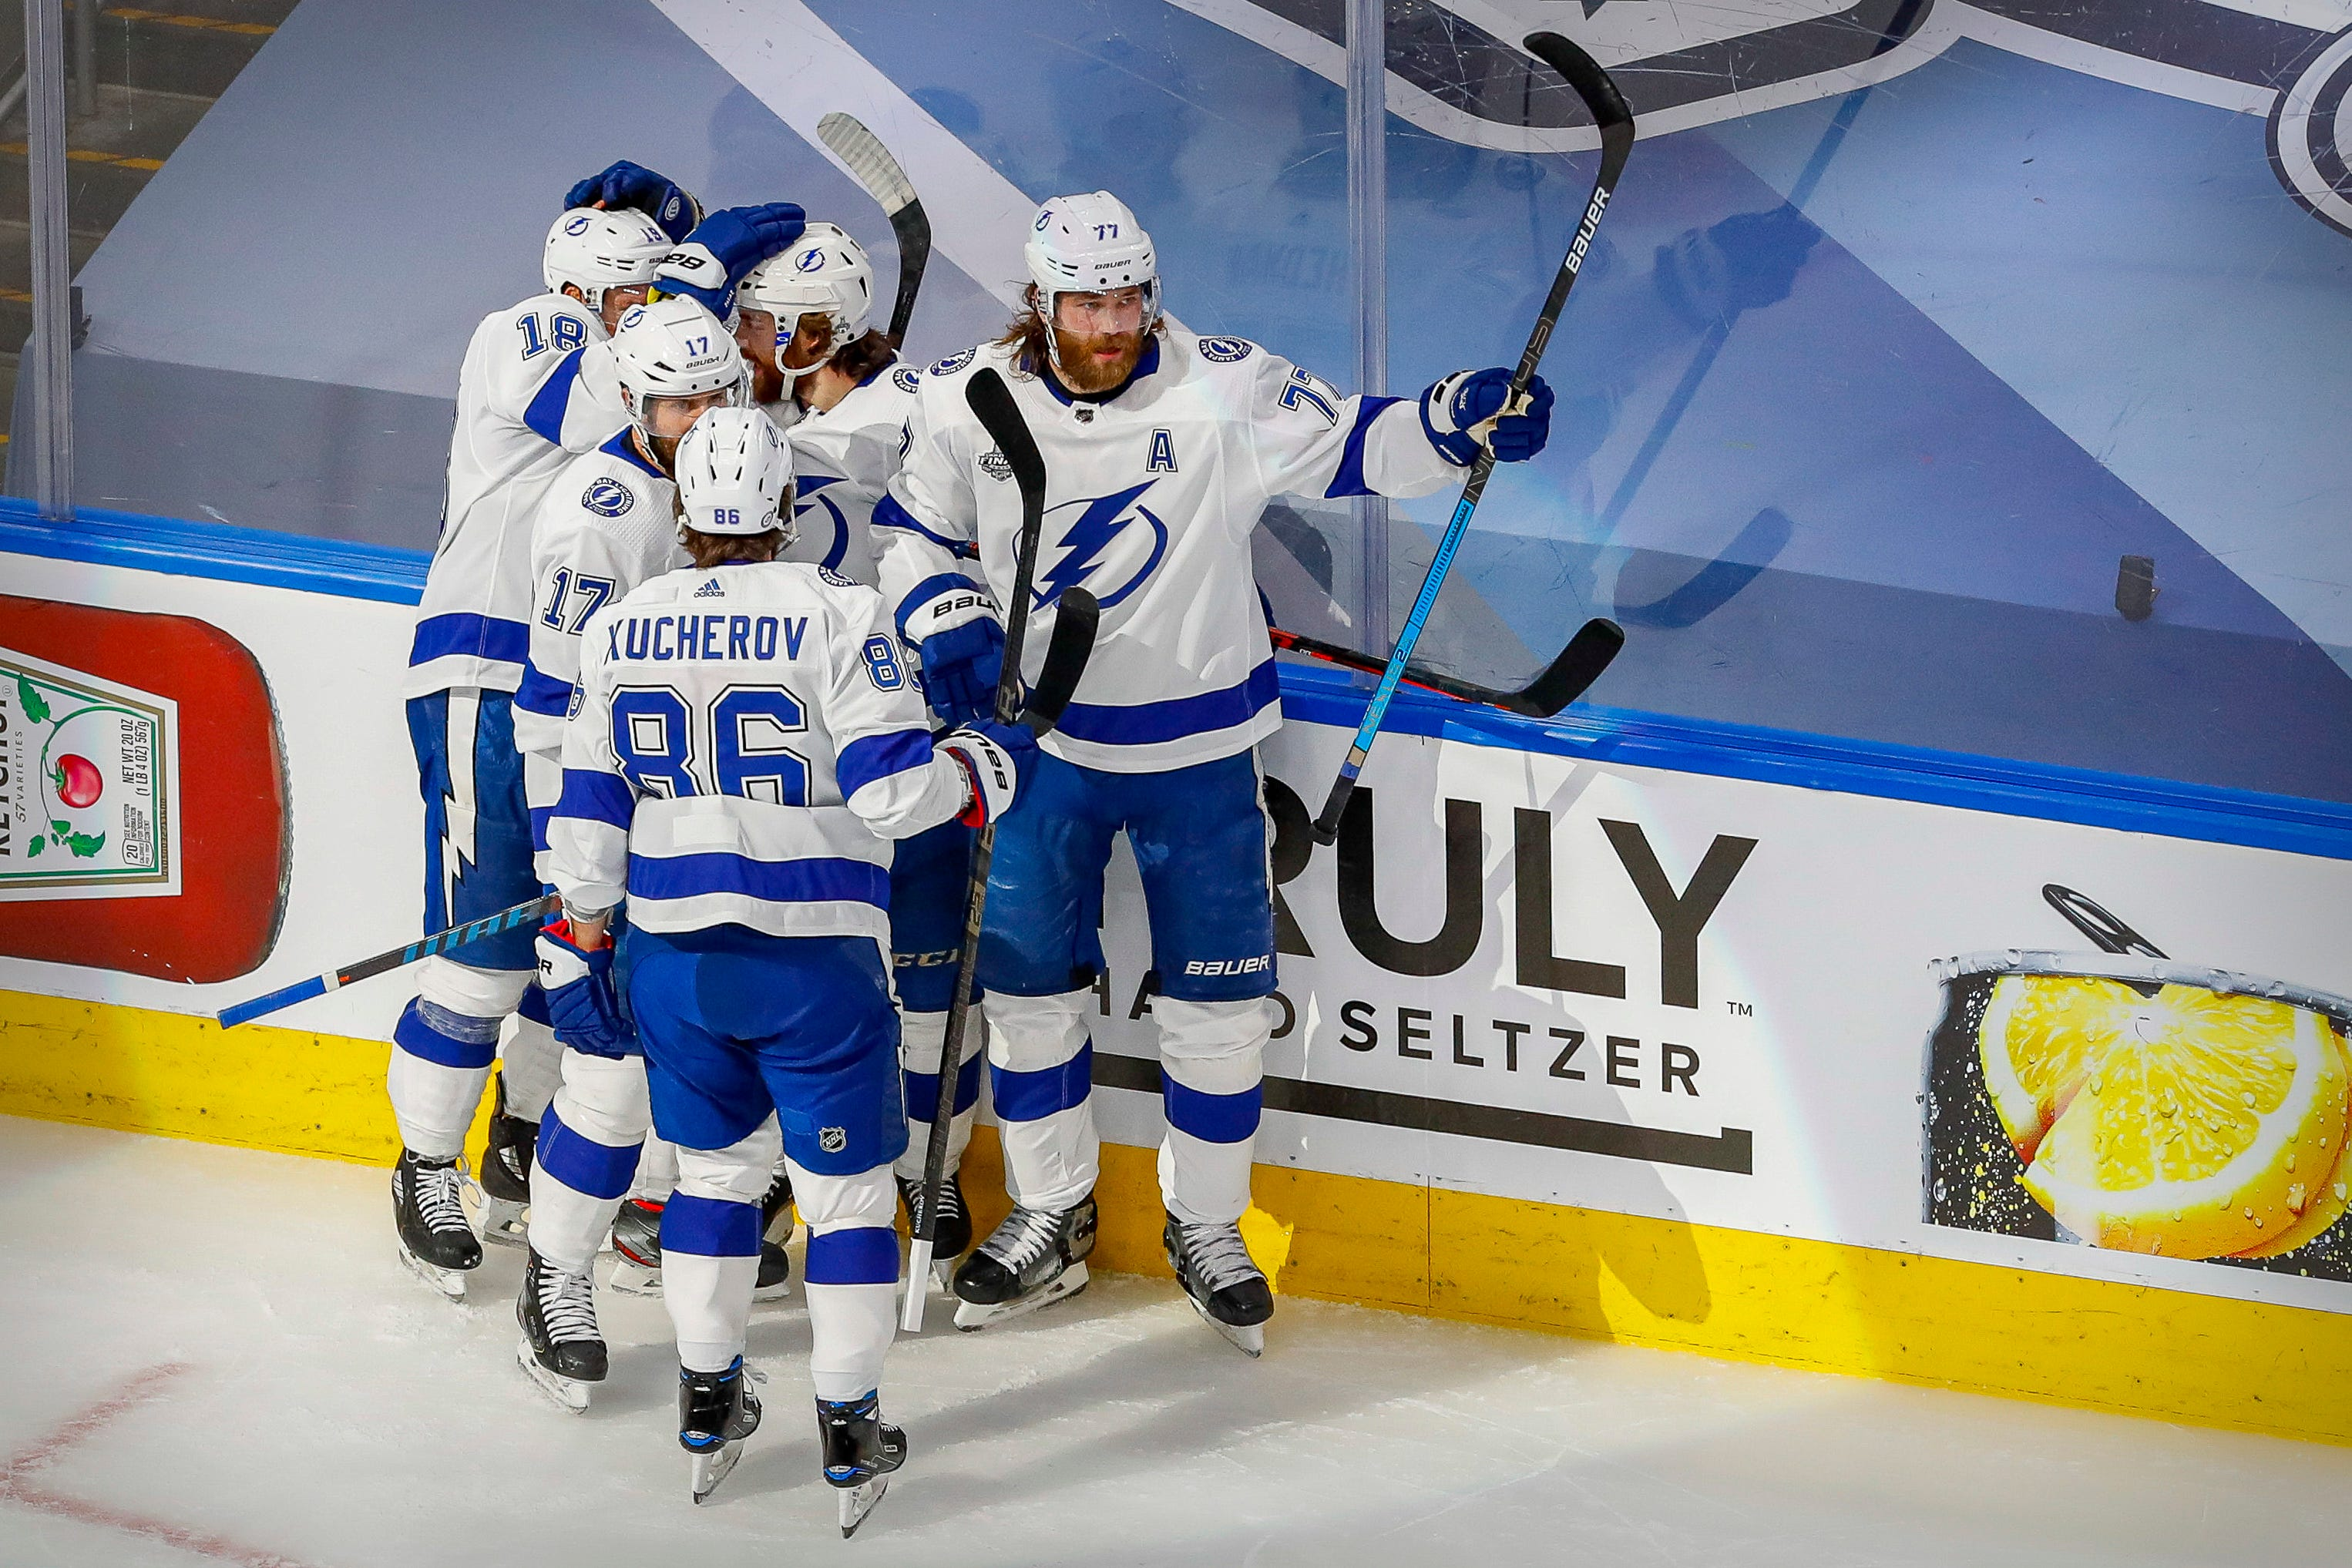 One year after shocking upset, Tampa Bay Lightning capture Stanley Cup with Game 6 win against Stars